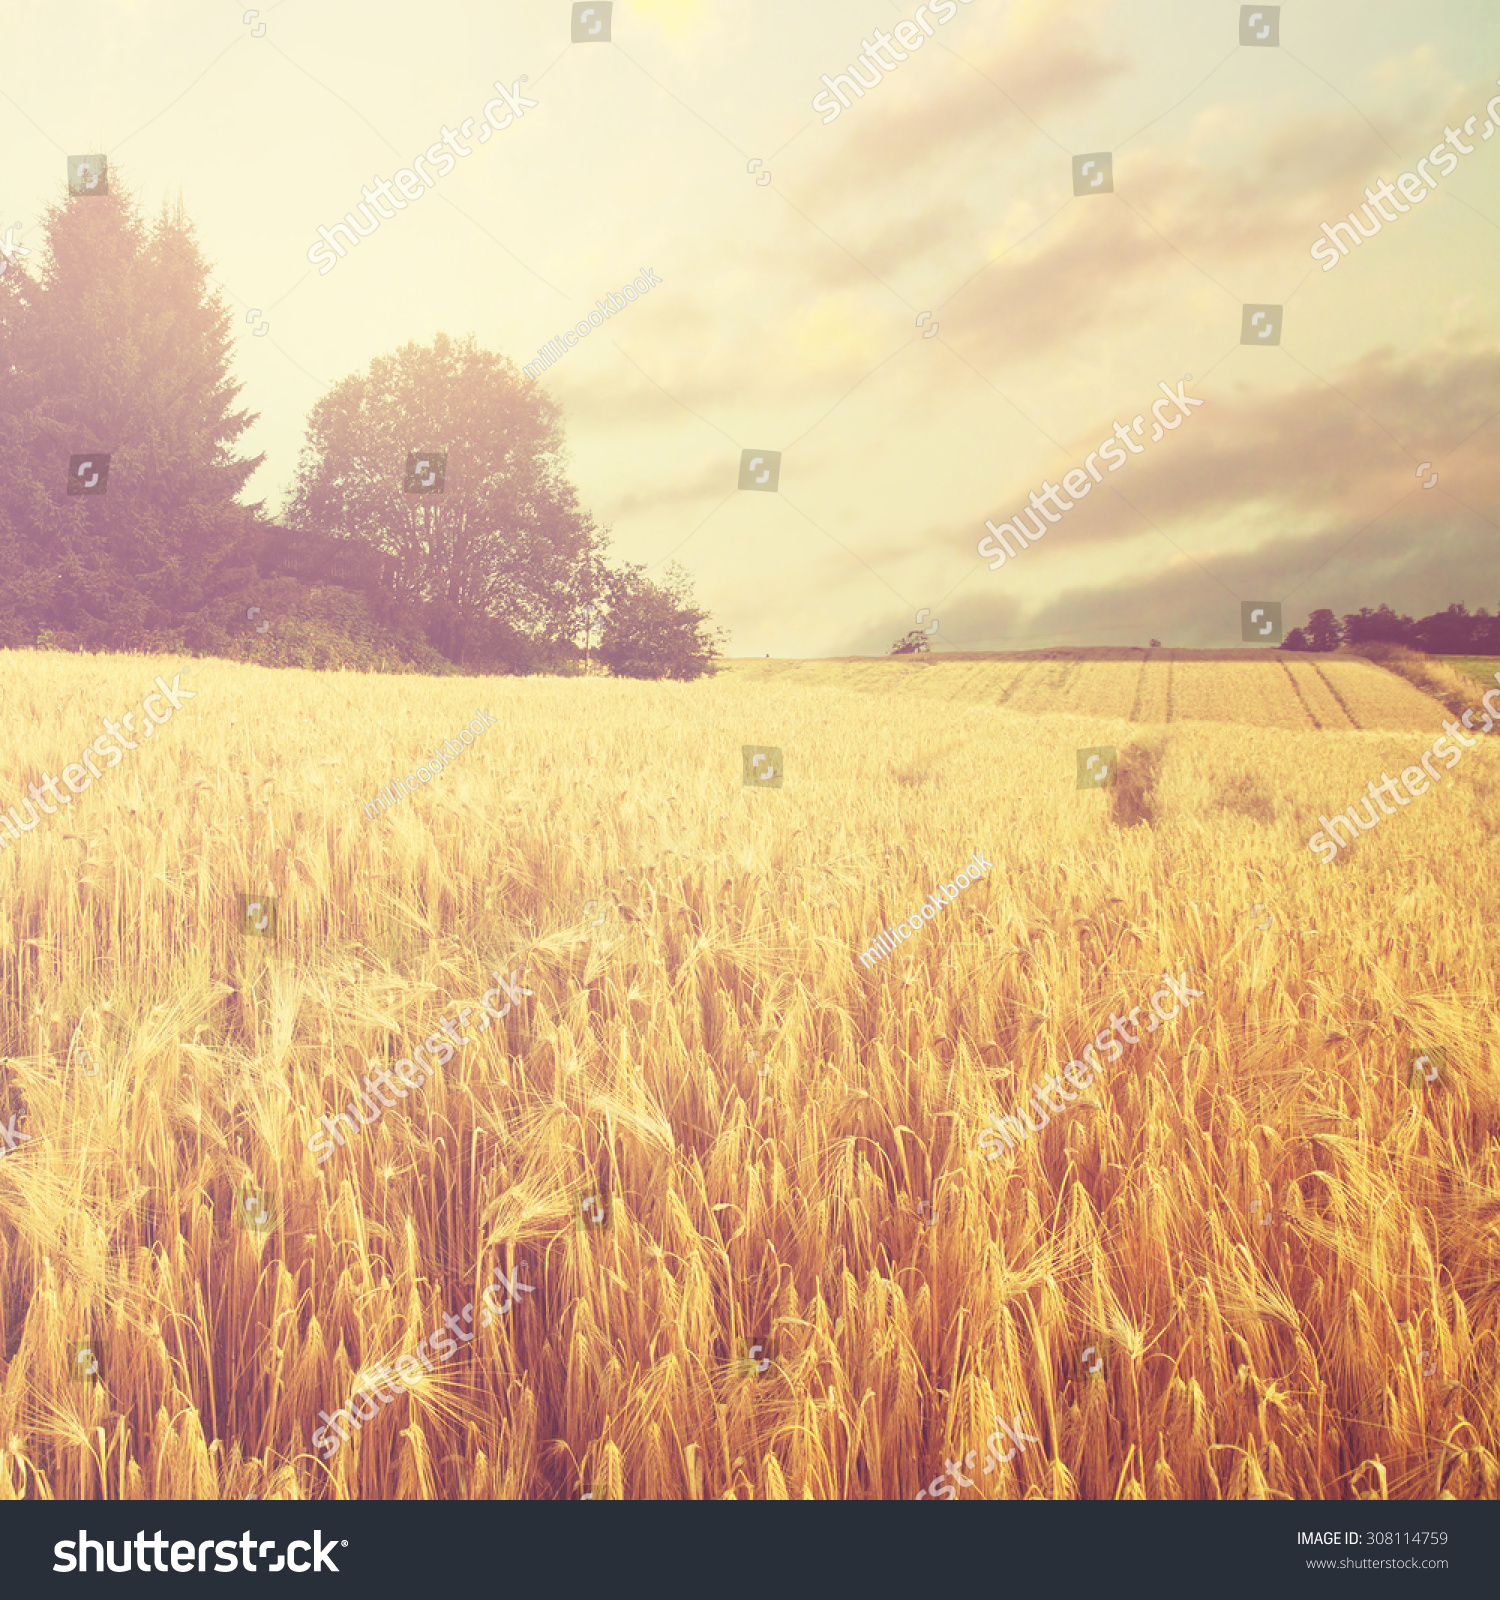 Norway summer Landscape with Wheat Field and Clouds #308114759